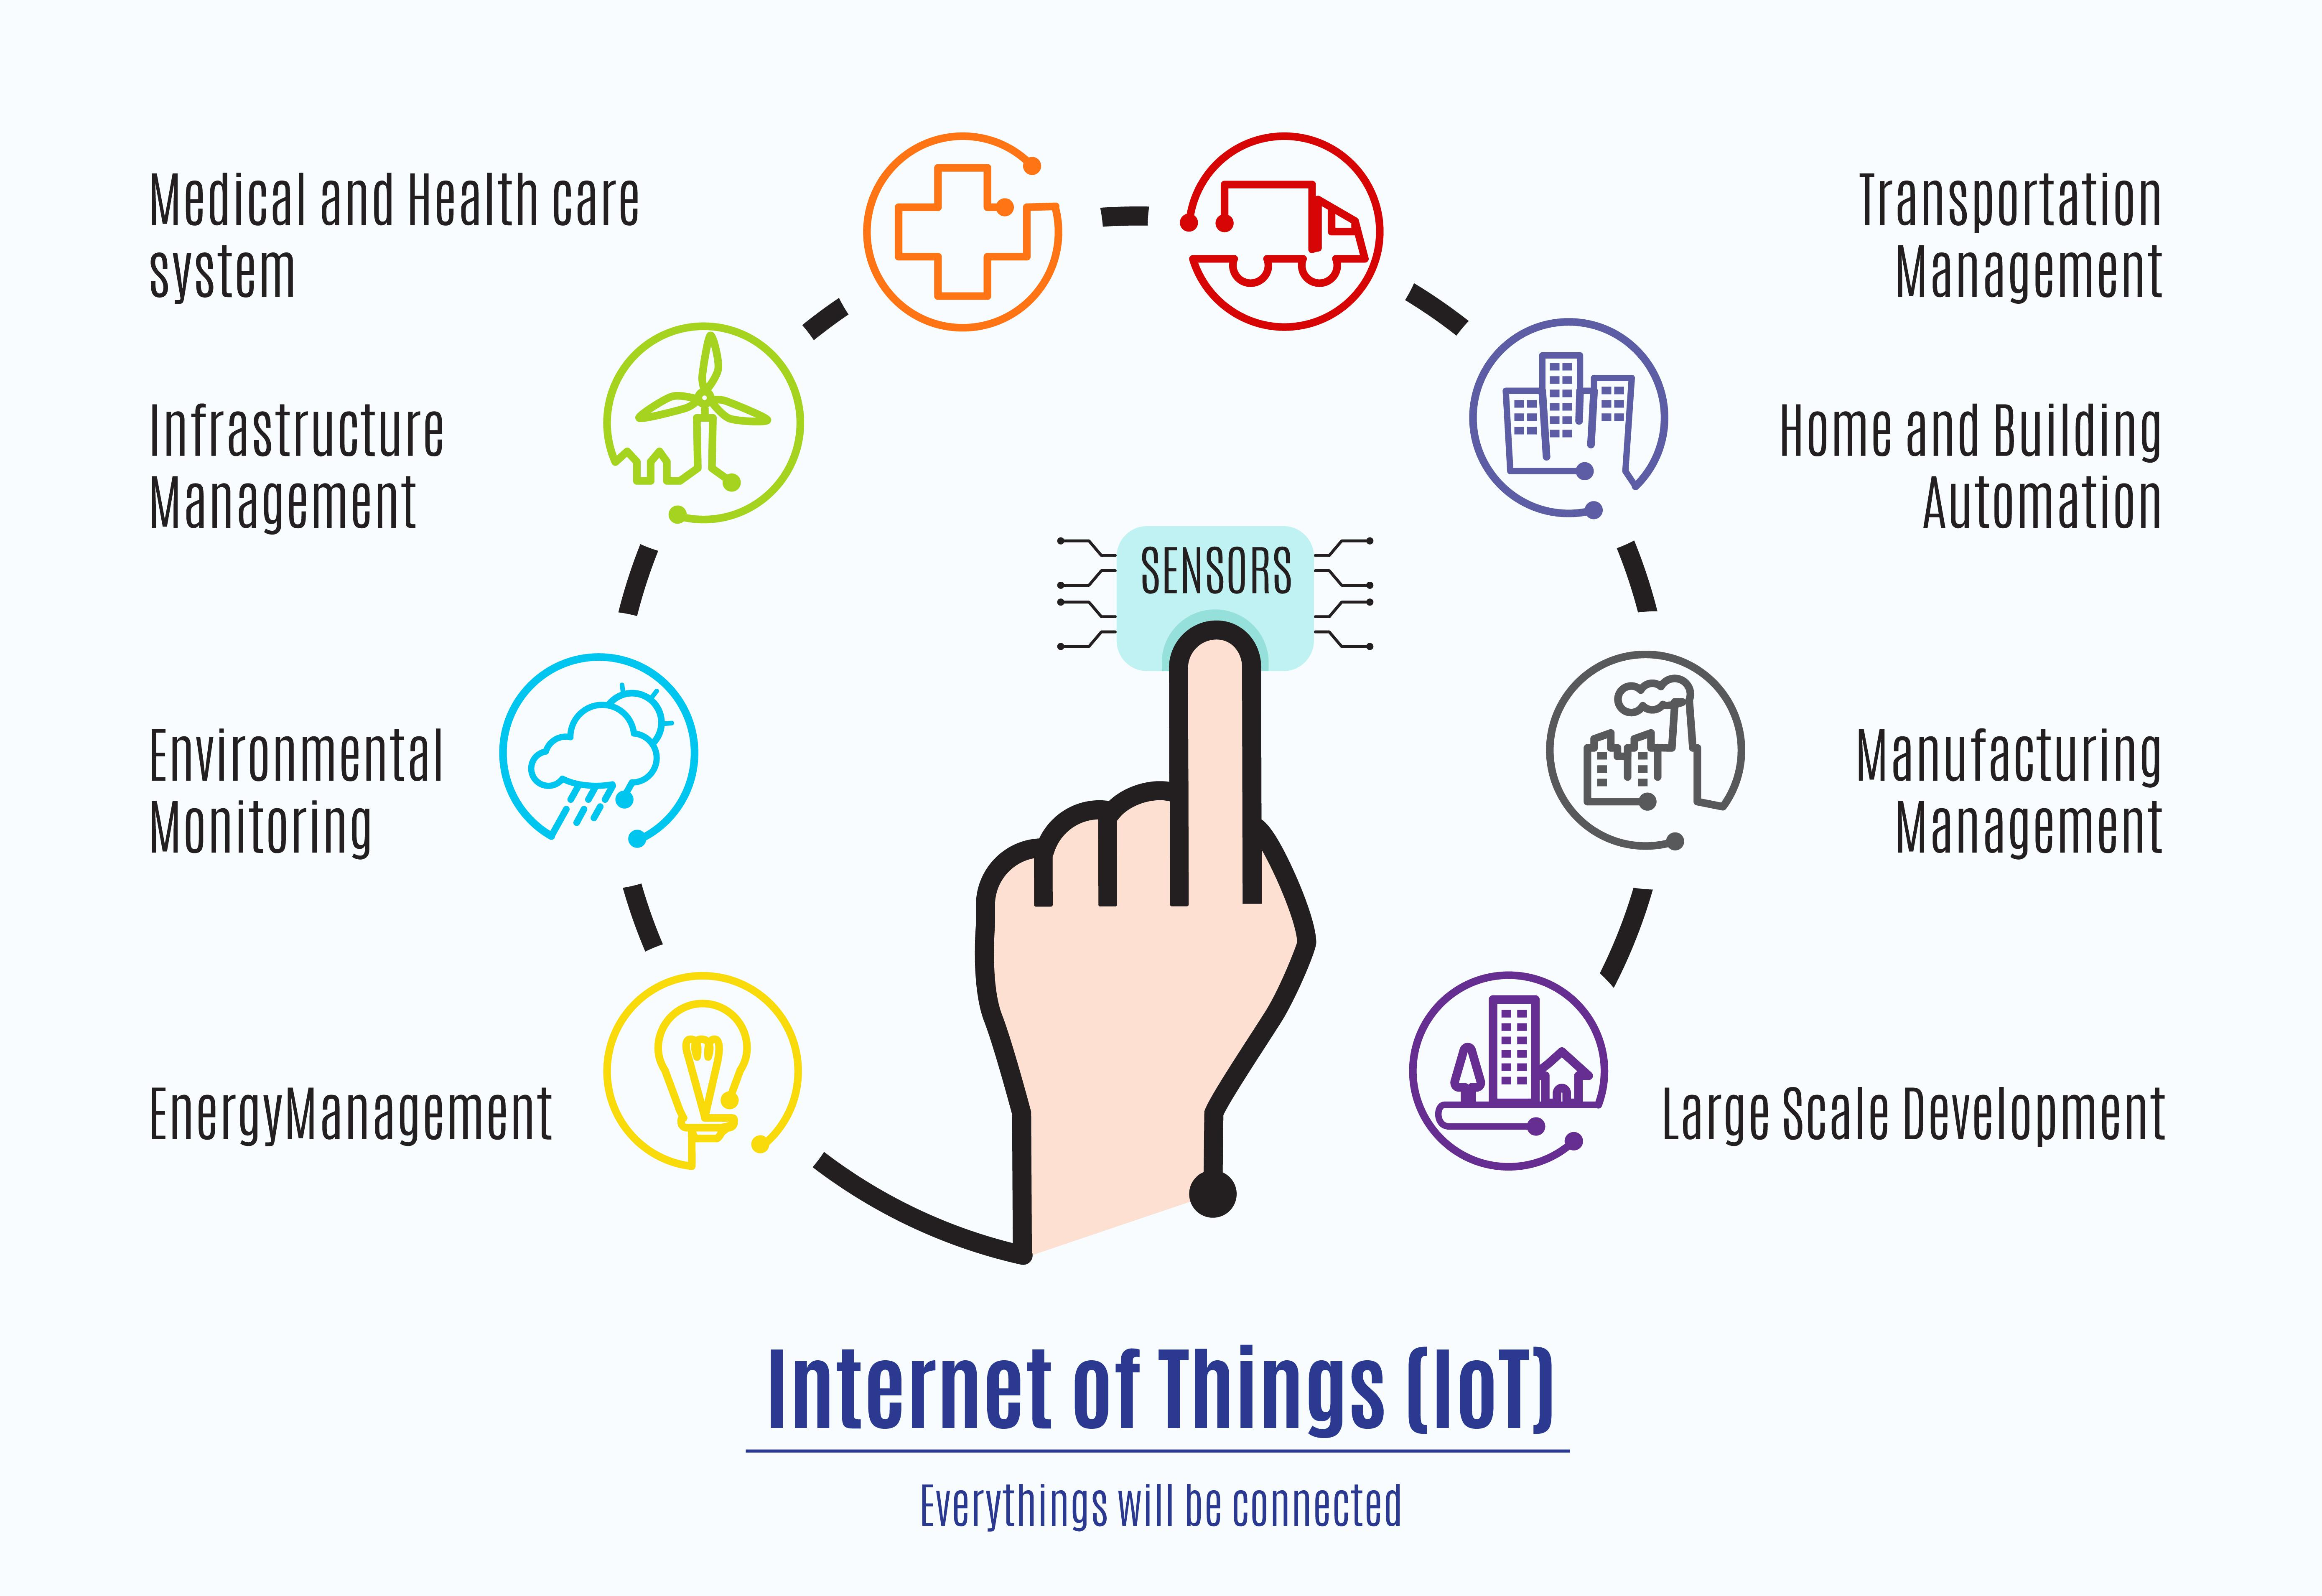 Get-the-Lowdown-on-Amazon-Web-Services-Internet-of-Things